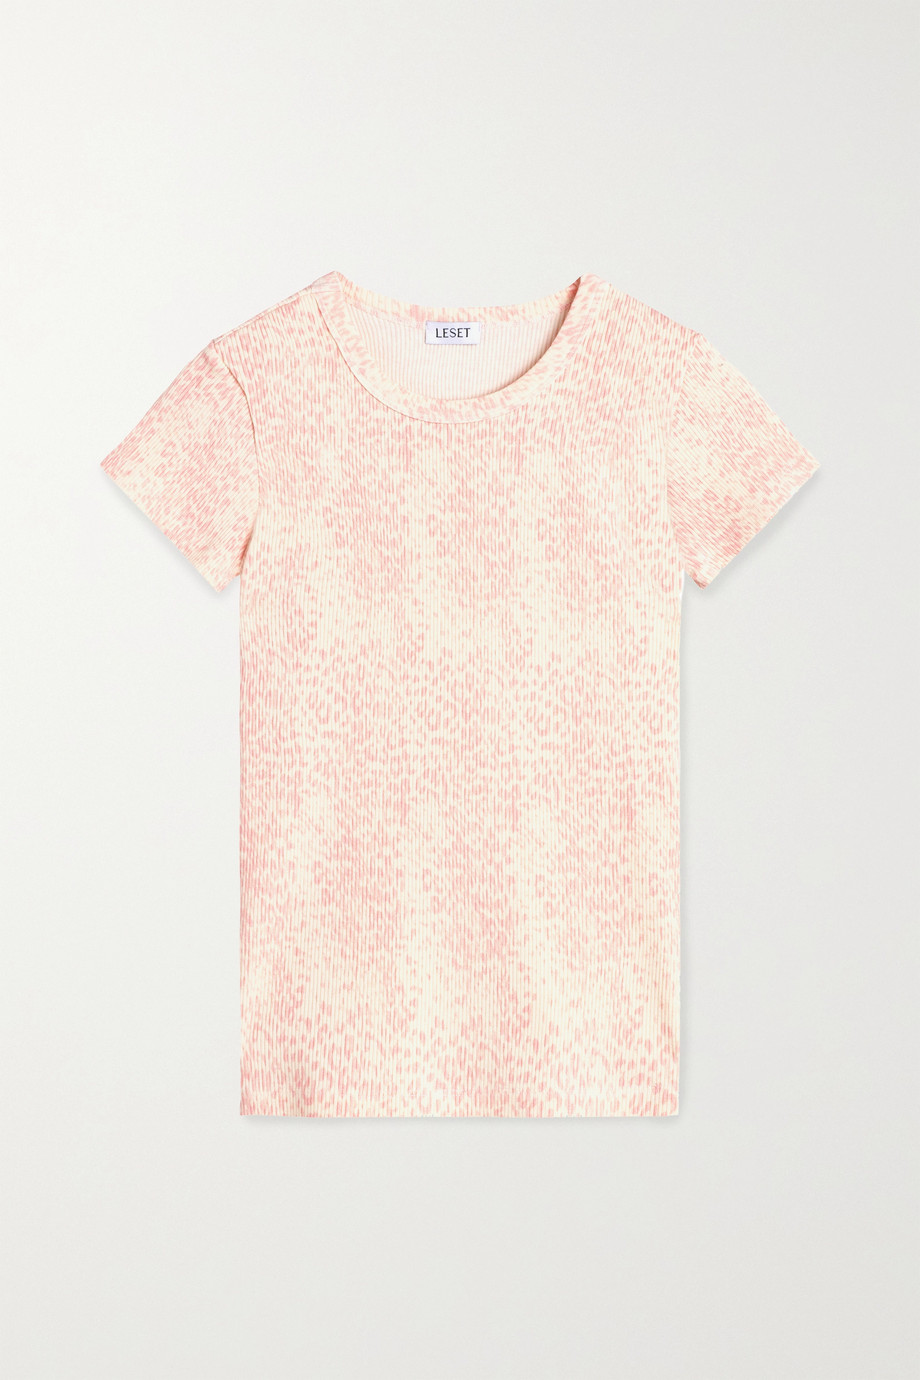 LESET Jamie leopard-print ribbed stretch-modal T-shirt